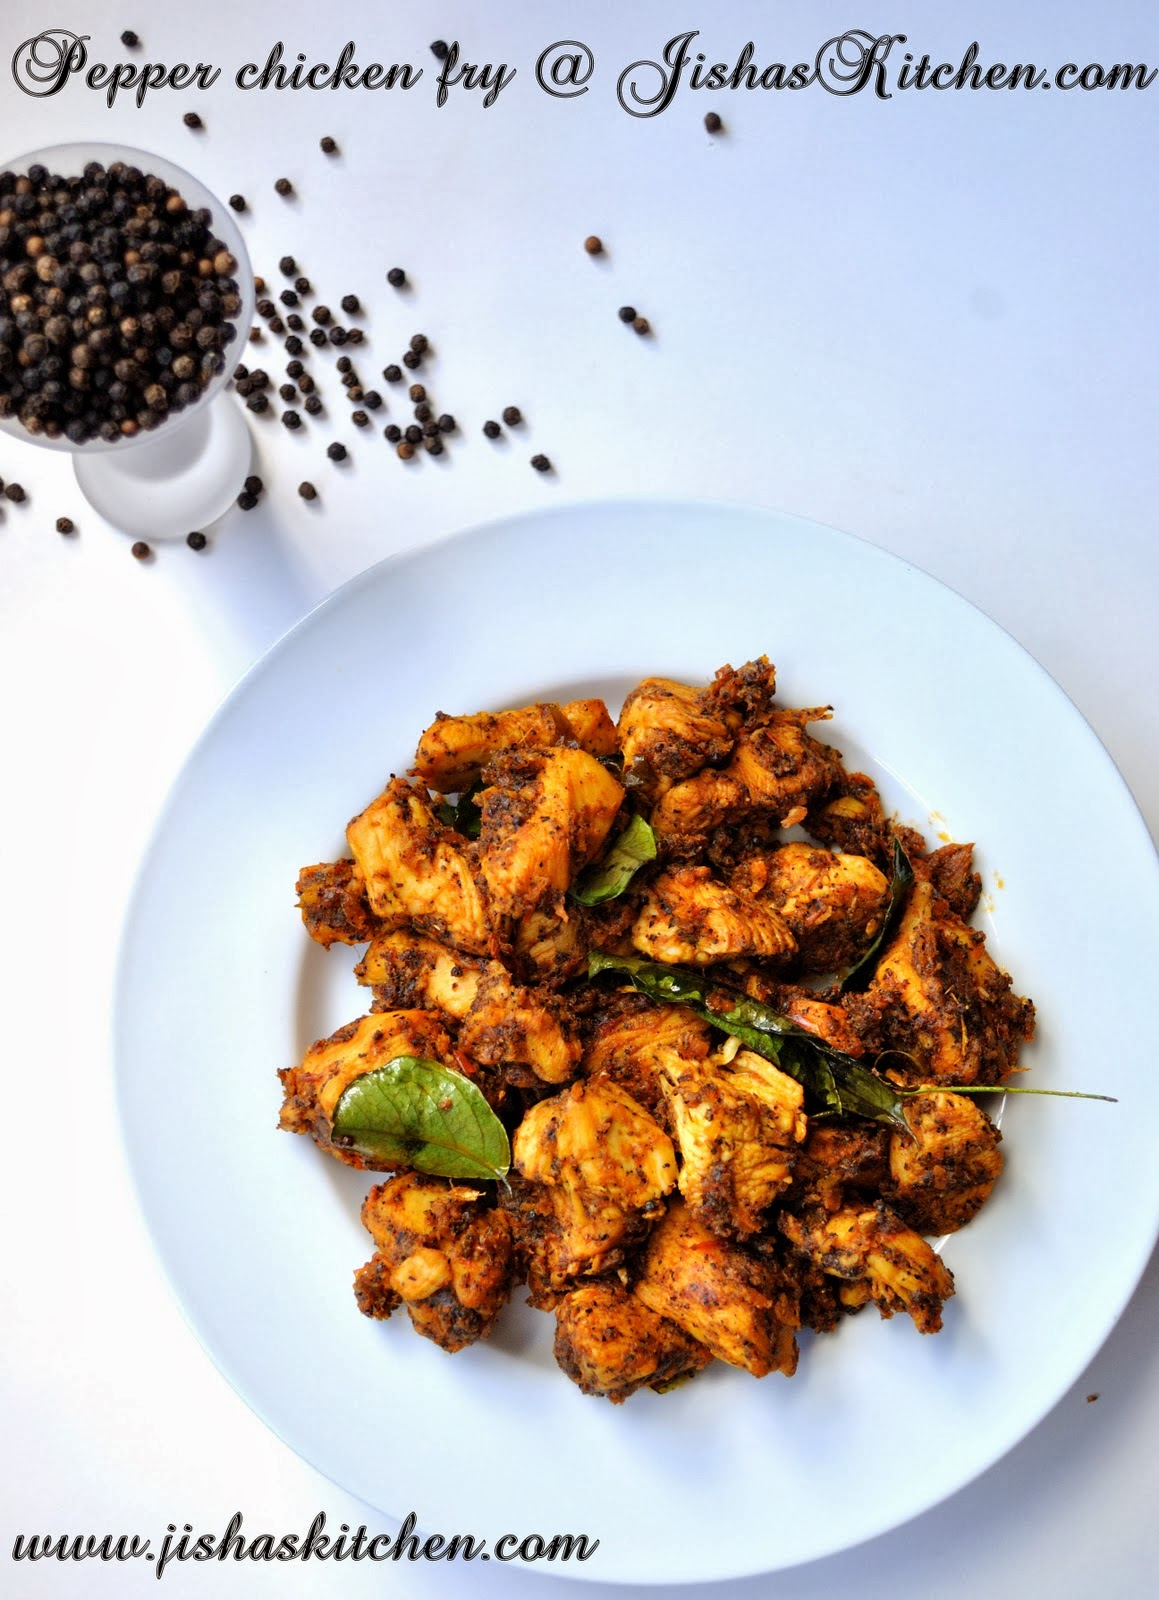 Nadan pepper chicken